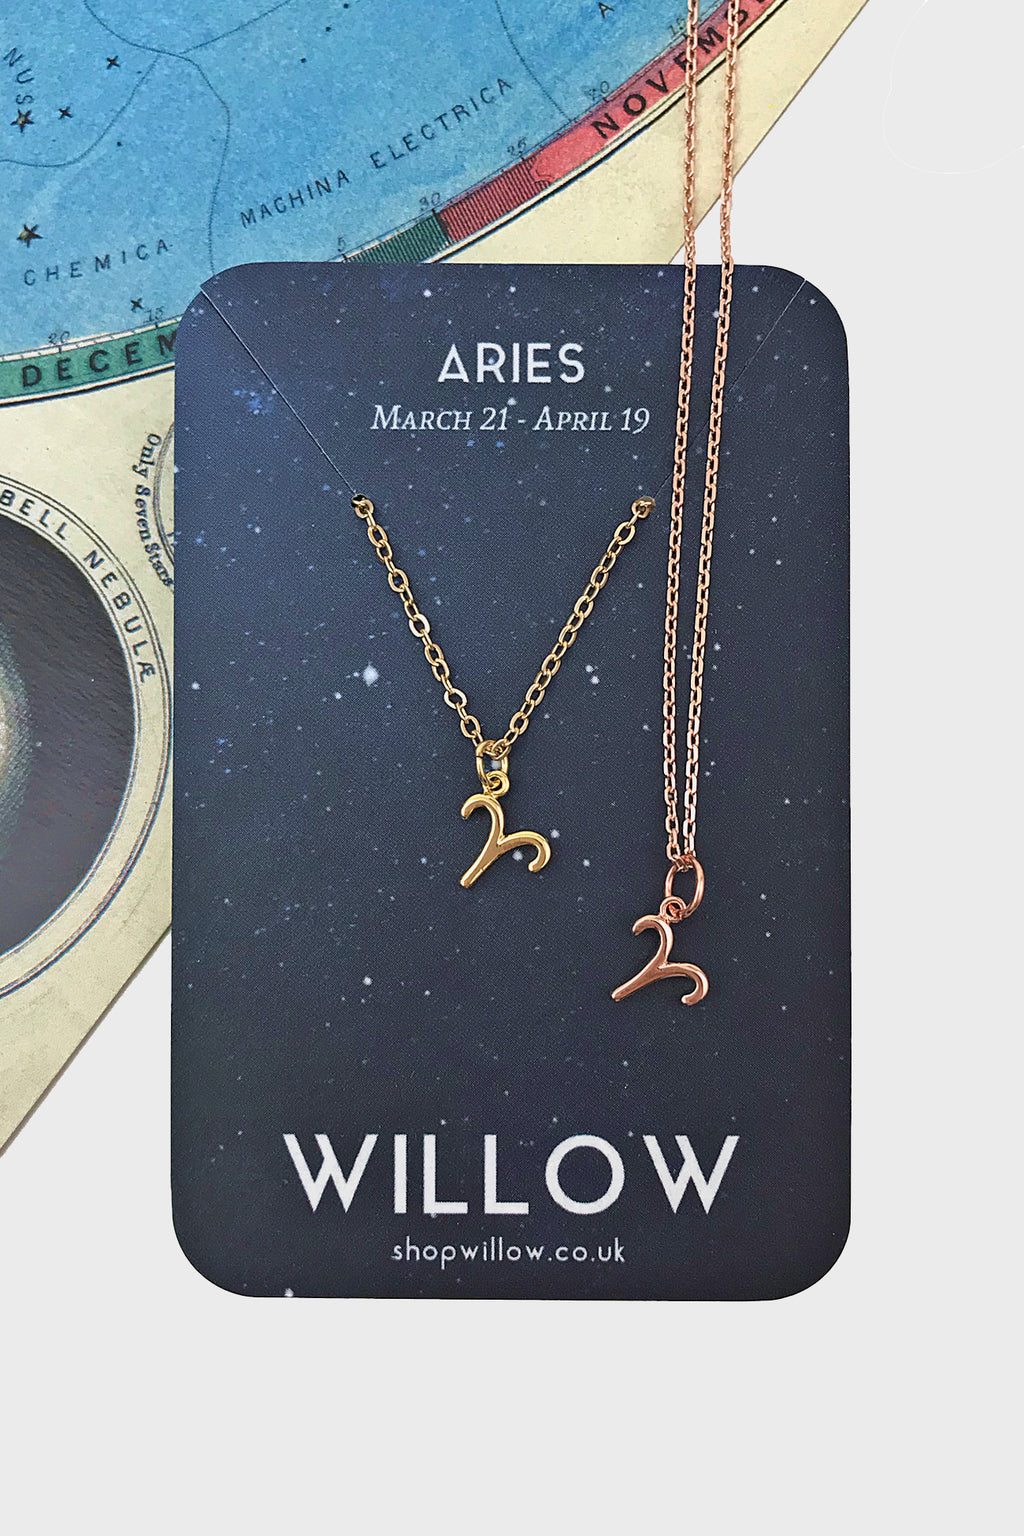 Aries mini symbol necklace